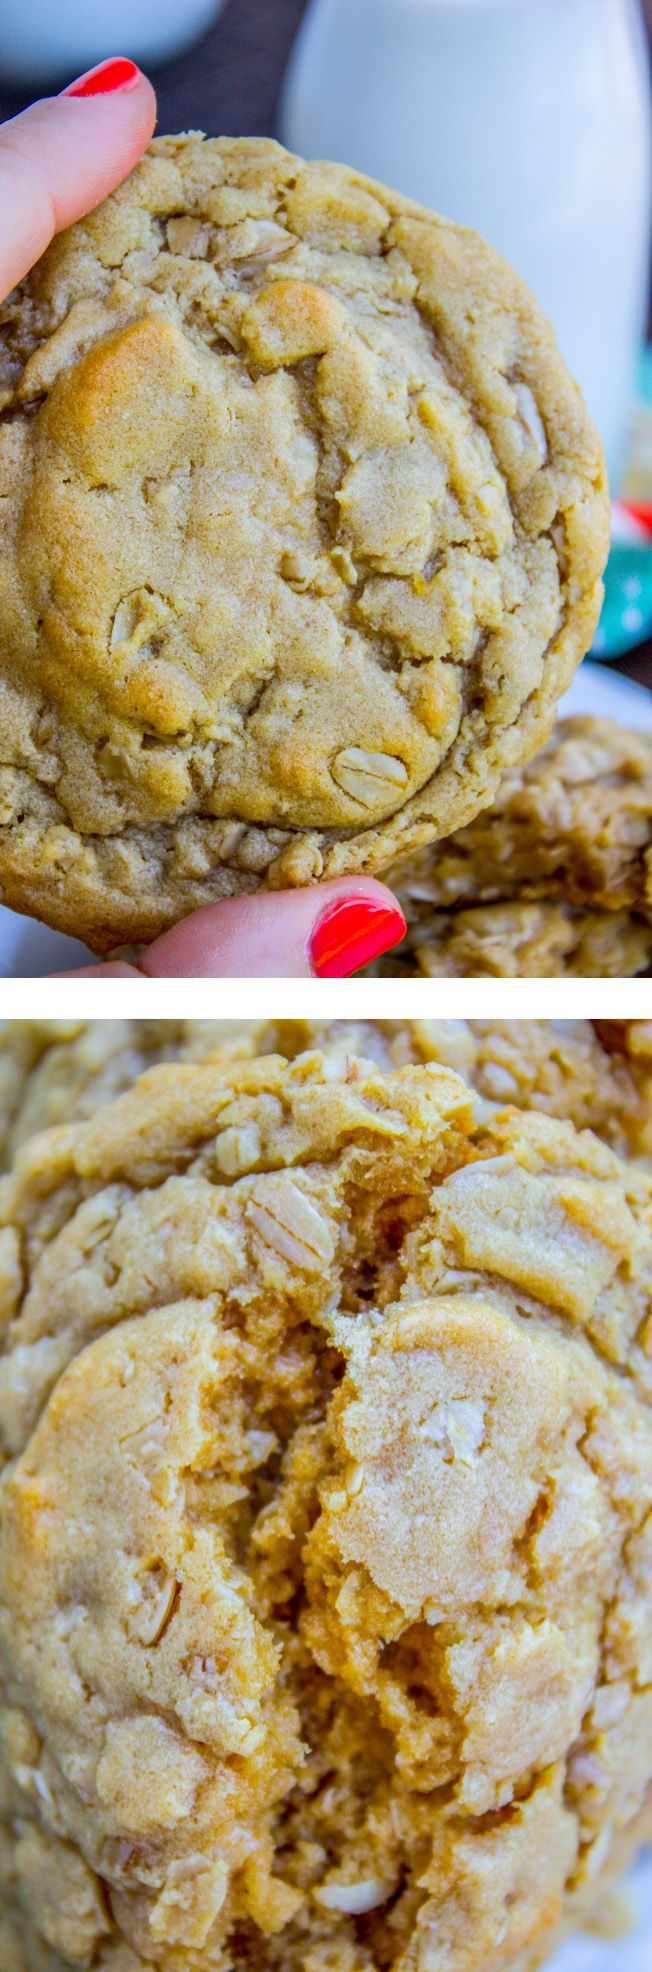 Peanut Butter Oatmeal Cookies from The Food Charlatan. These cookies will blow your mind! Tons of peanut butter flavor (actual peanuts optional) paired with some chewy oats for an amazing texture. They are so tender and totally melt in your mouth!